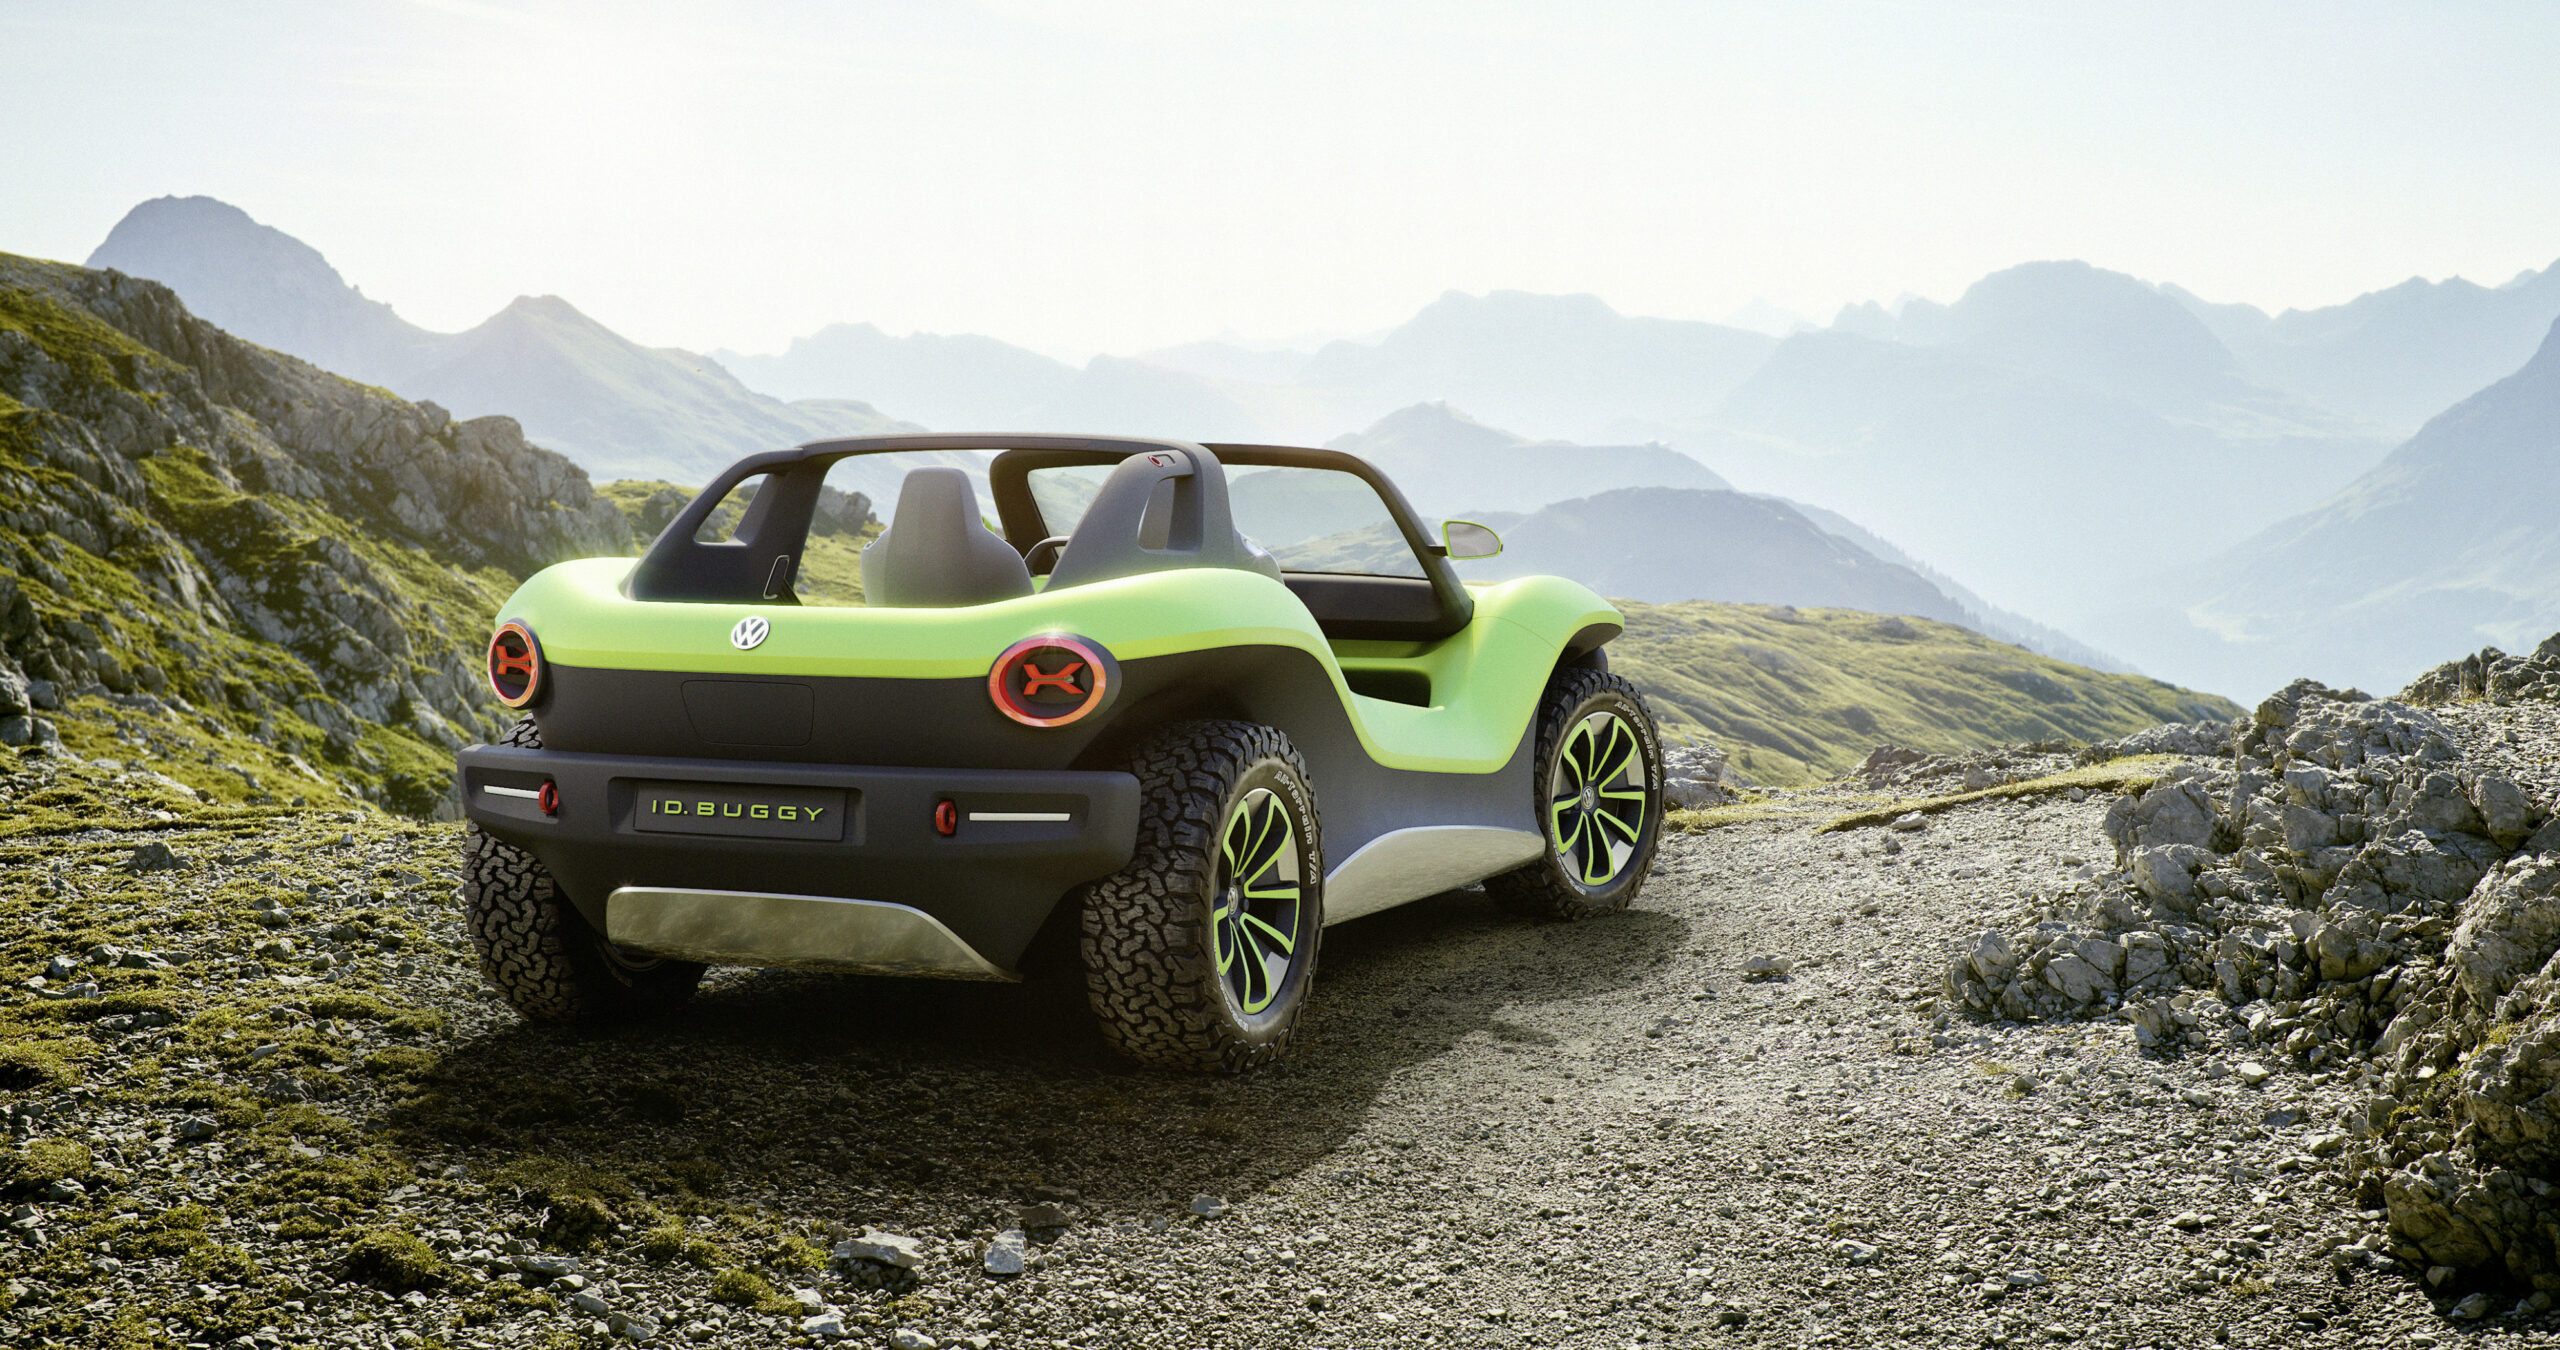 VW's futuristic all-electric dune buggy embraces its 6s' roots ...